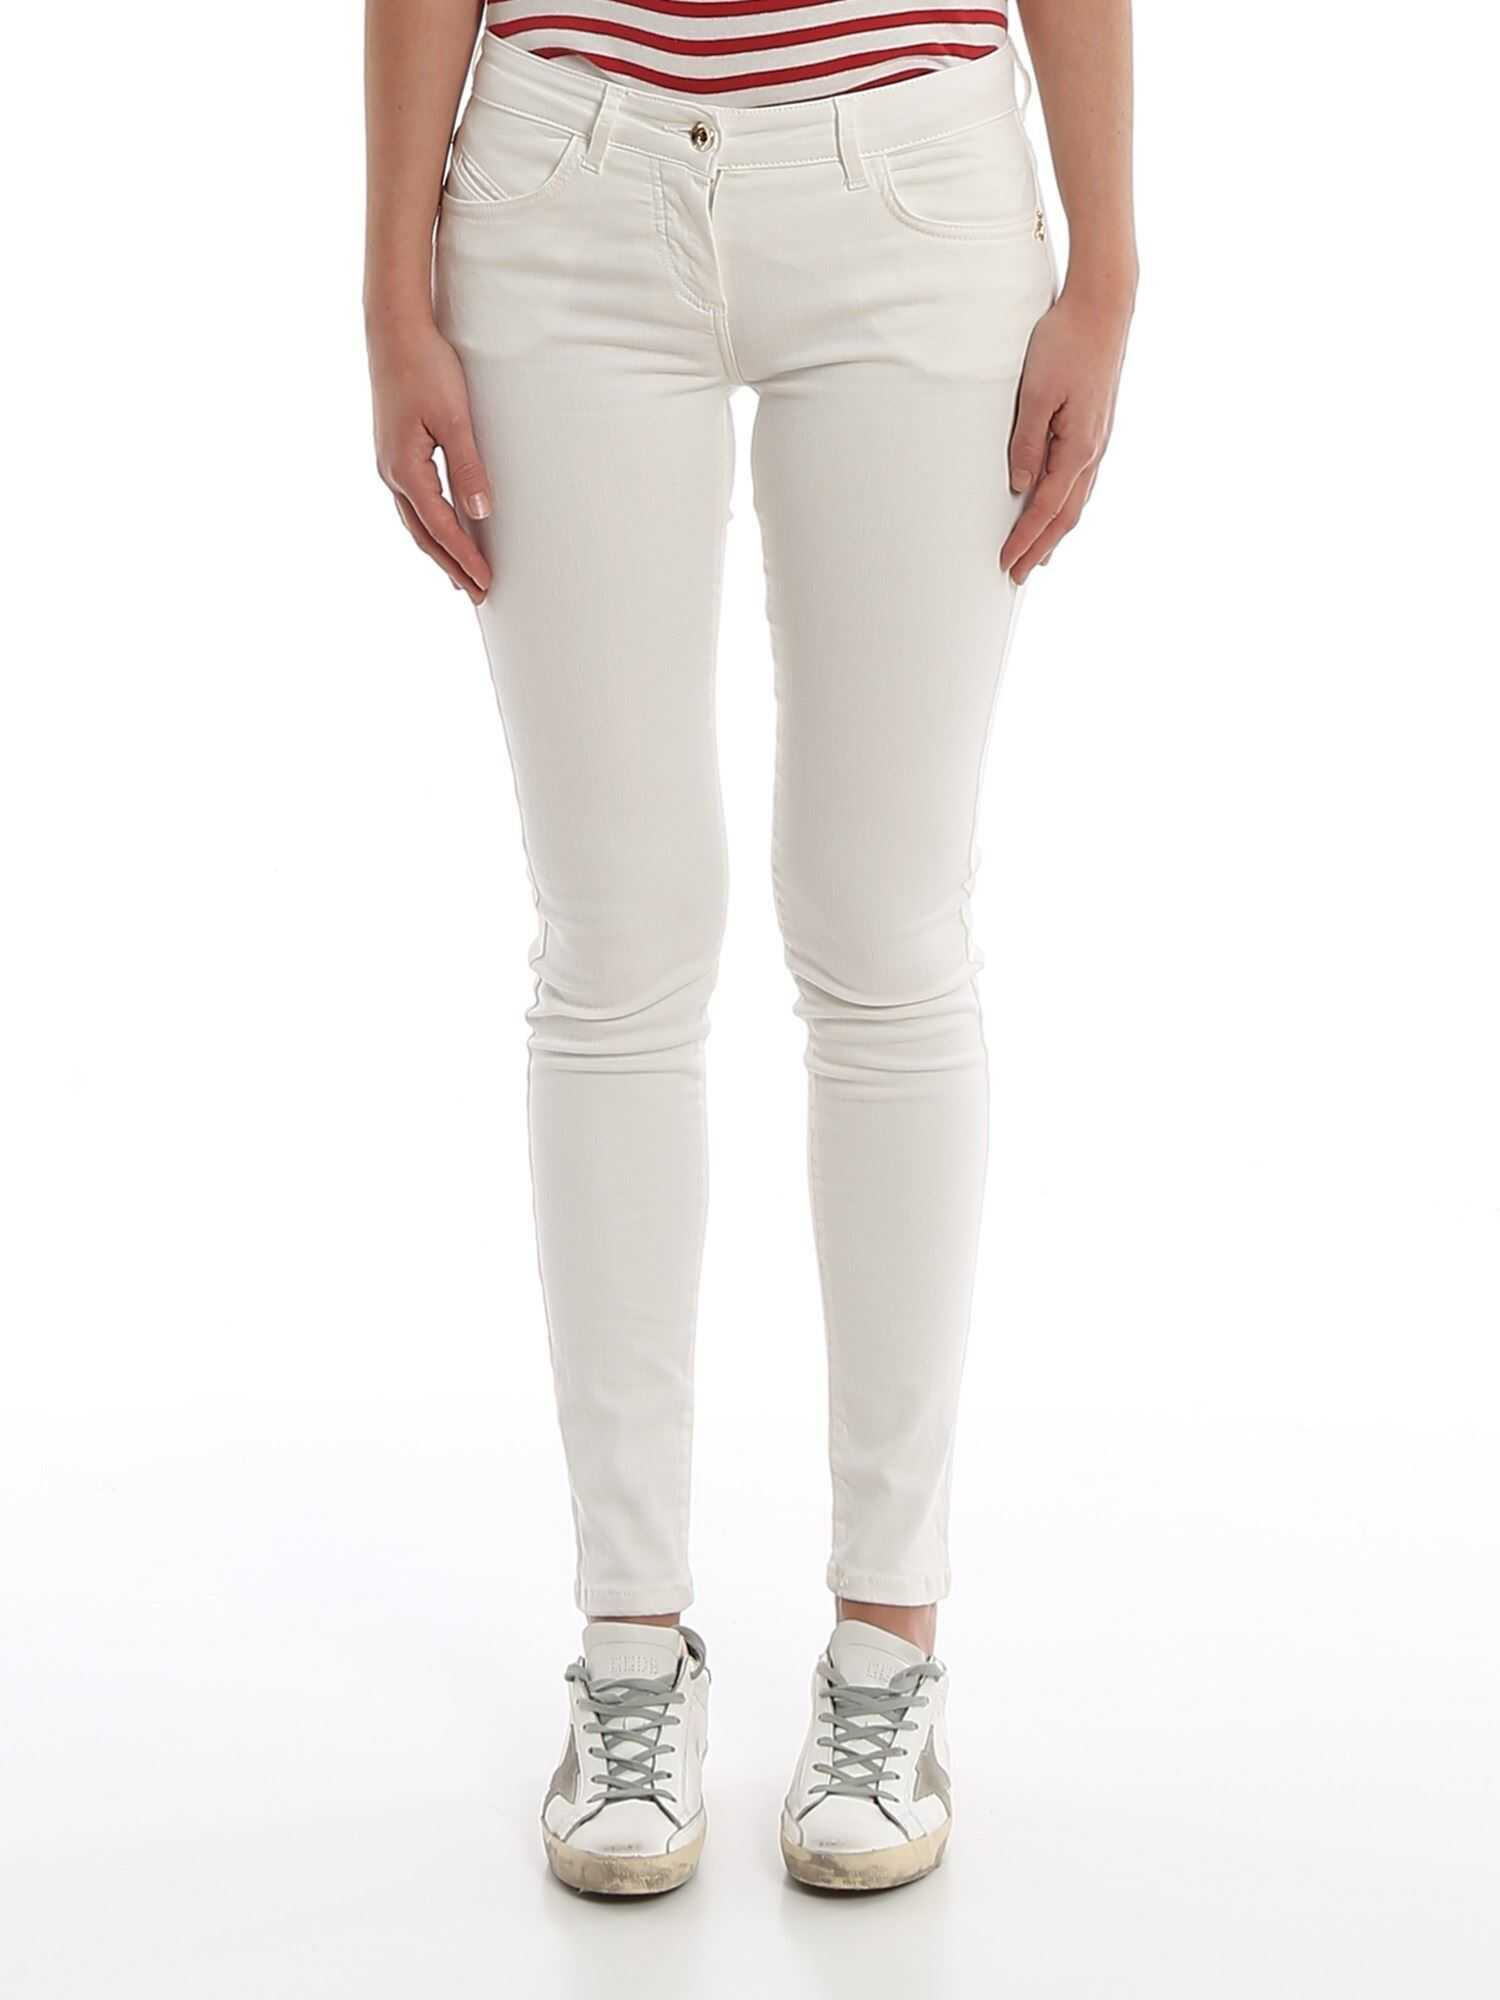 Patrizia Pepe Jeggings With Embroidered Pocket In White White